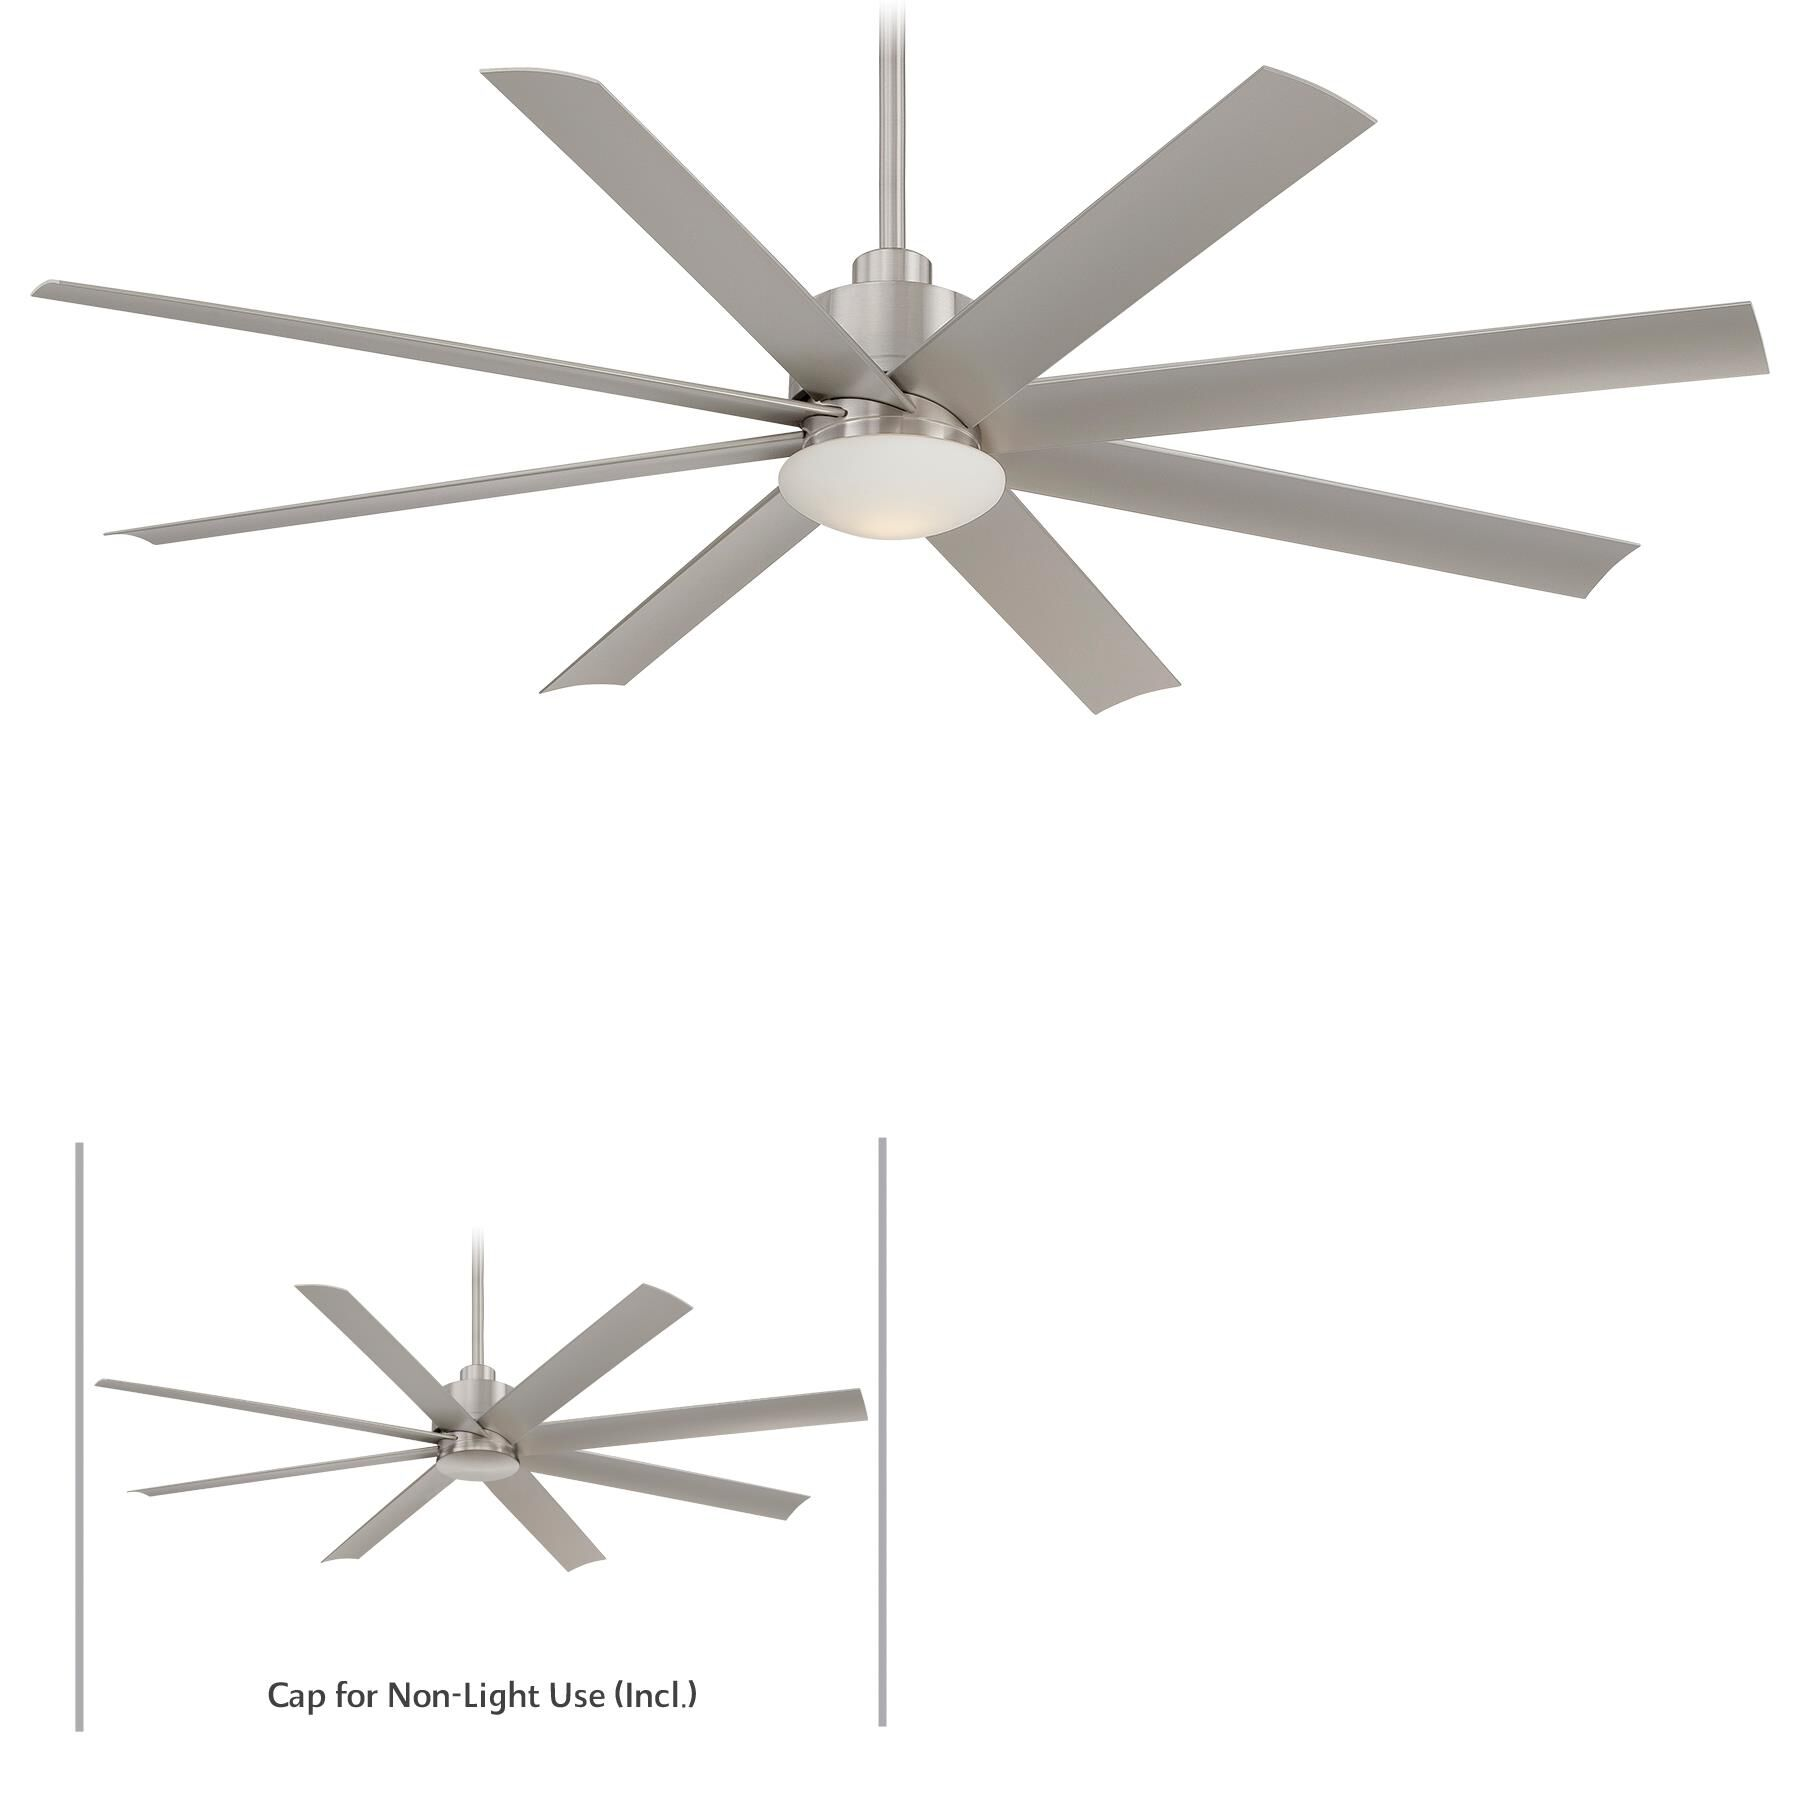 Designer Lights Room & Exterior Aire Slipstream Led Outdoor Rated 65 Inch Ceiling Fan with Light Kit Slipstream Led - F888L-BNW - Modern Contemporary Ceiling Fan